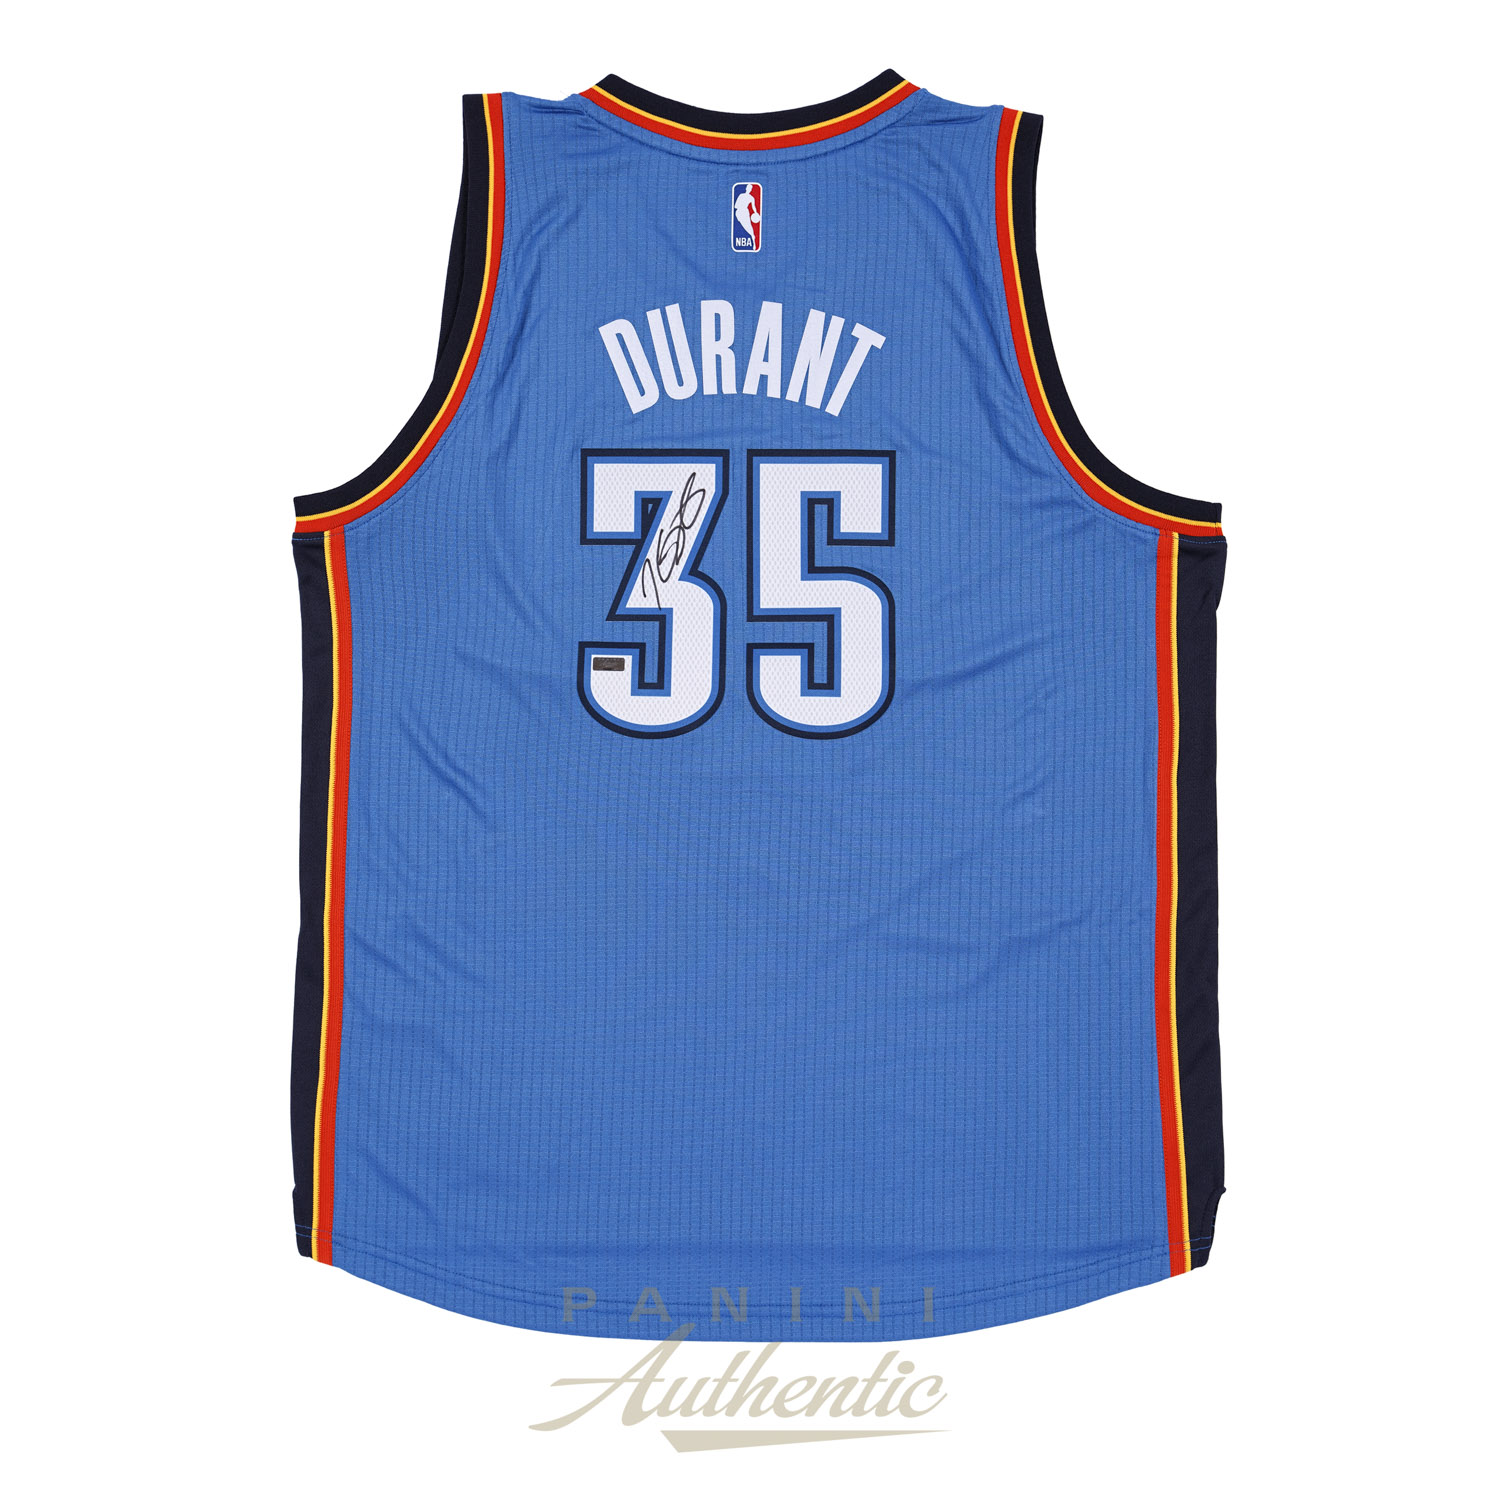 3781e206d Kevin Durant Autographed Adidas Blue Thunder Swingman Jersey ~Open Edition  Item~